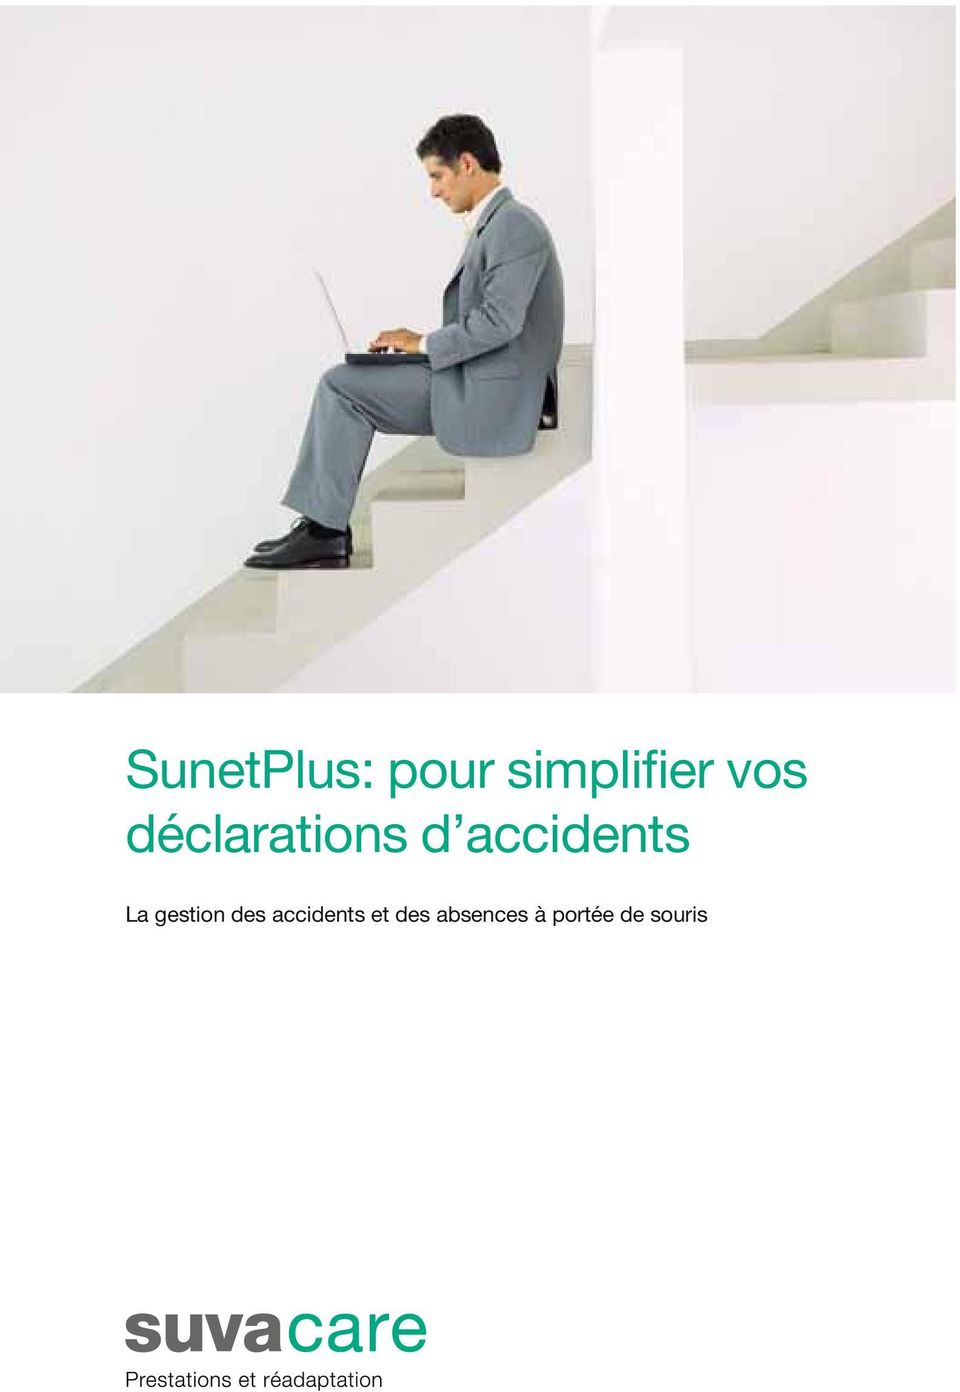 La gestion des accidents et